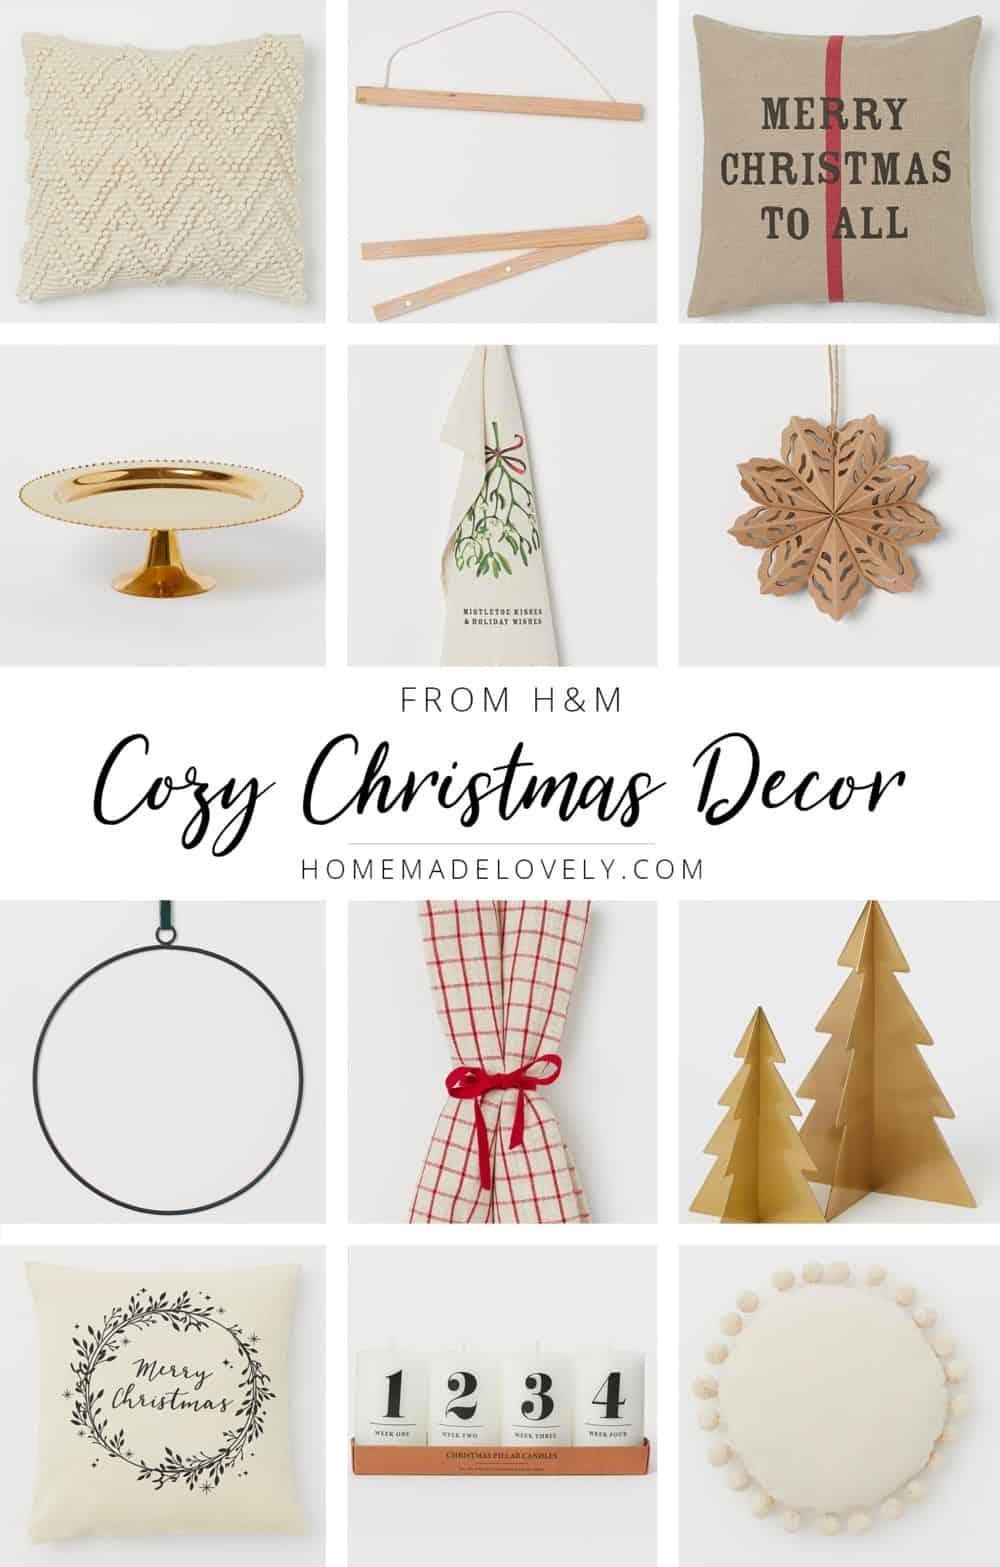 Cozy Christmas Decor from H&M - Pretty Holiday Home Decor